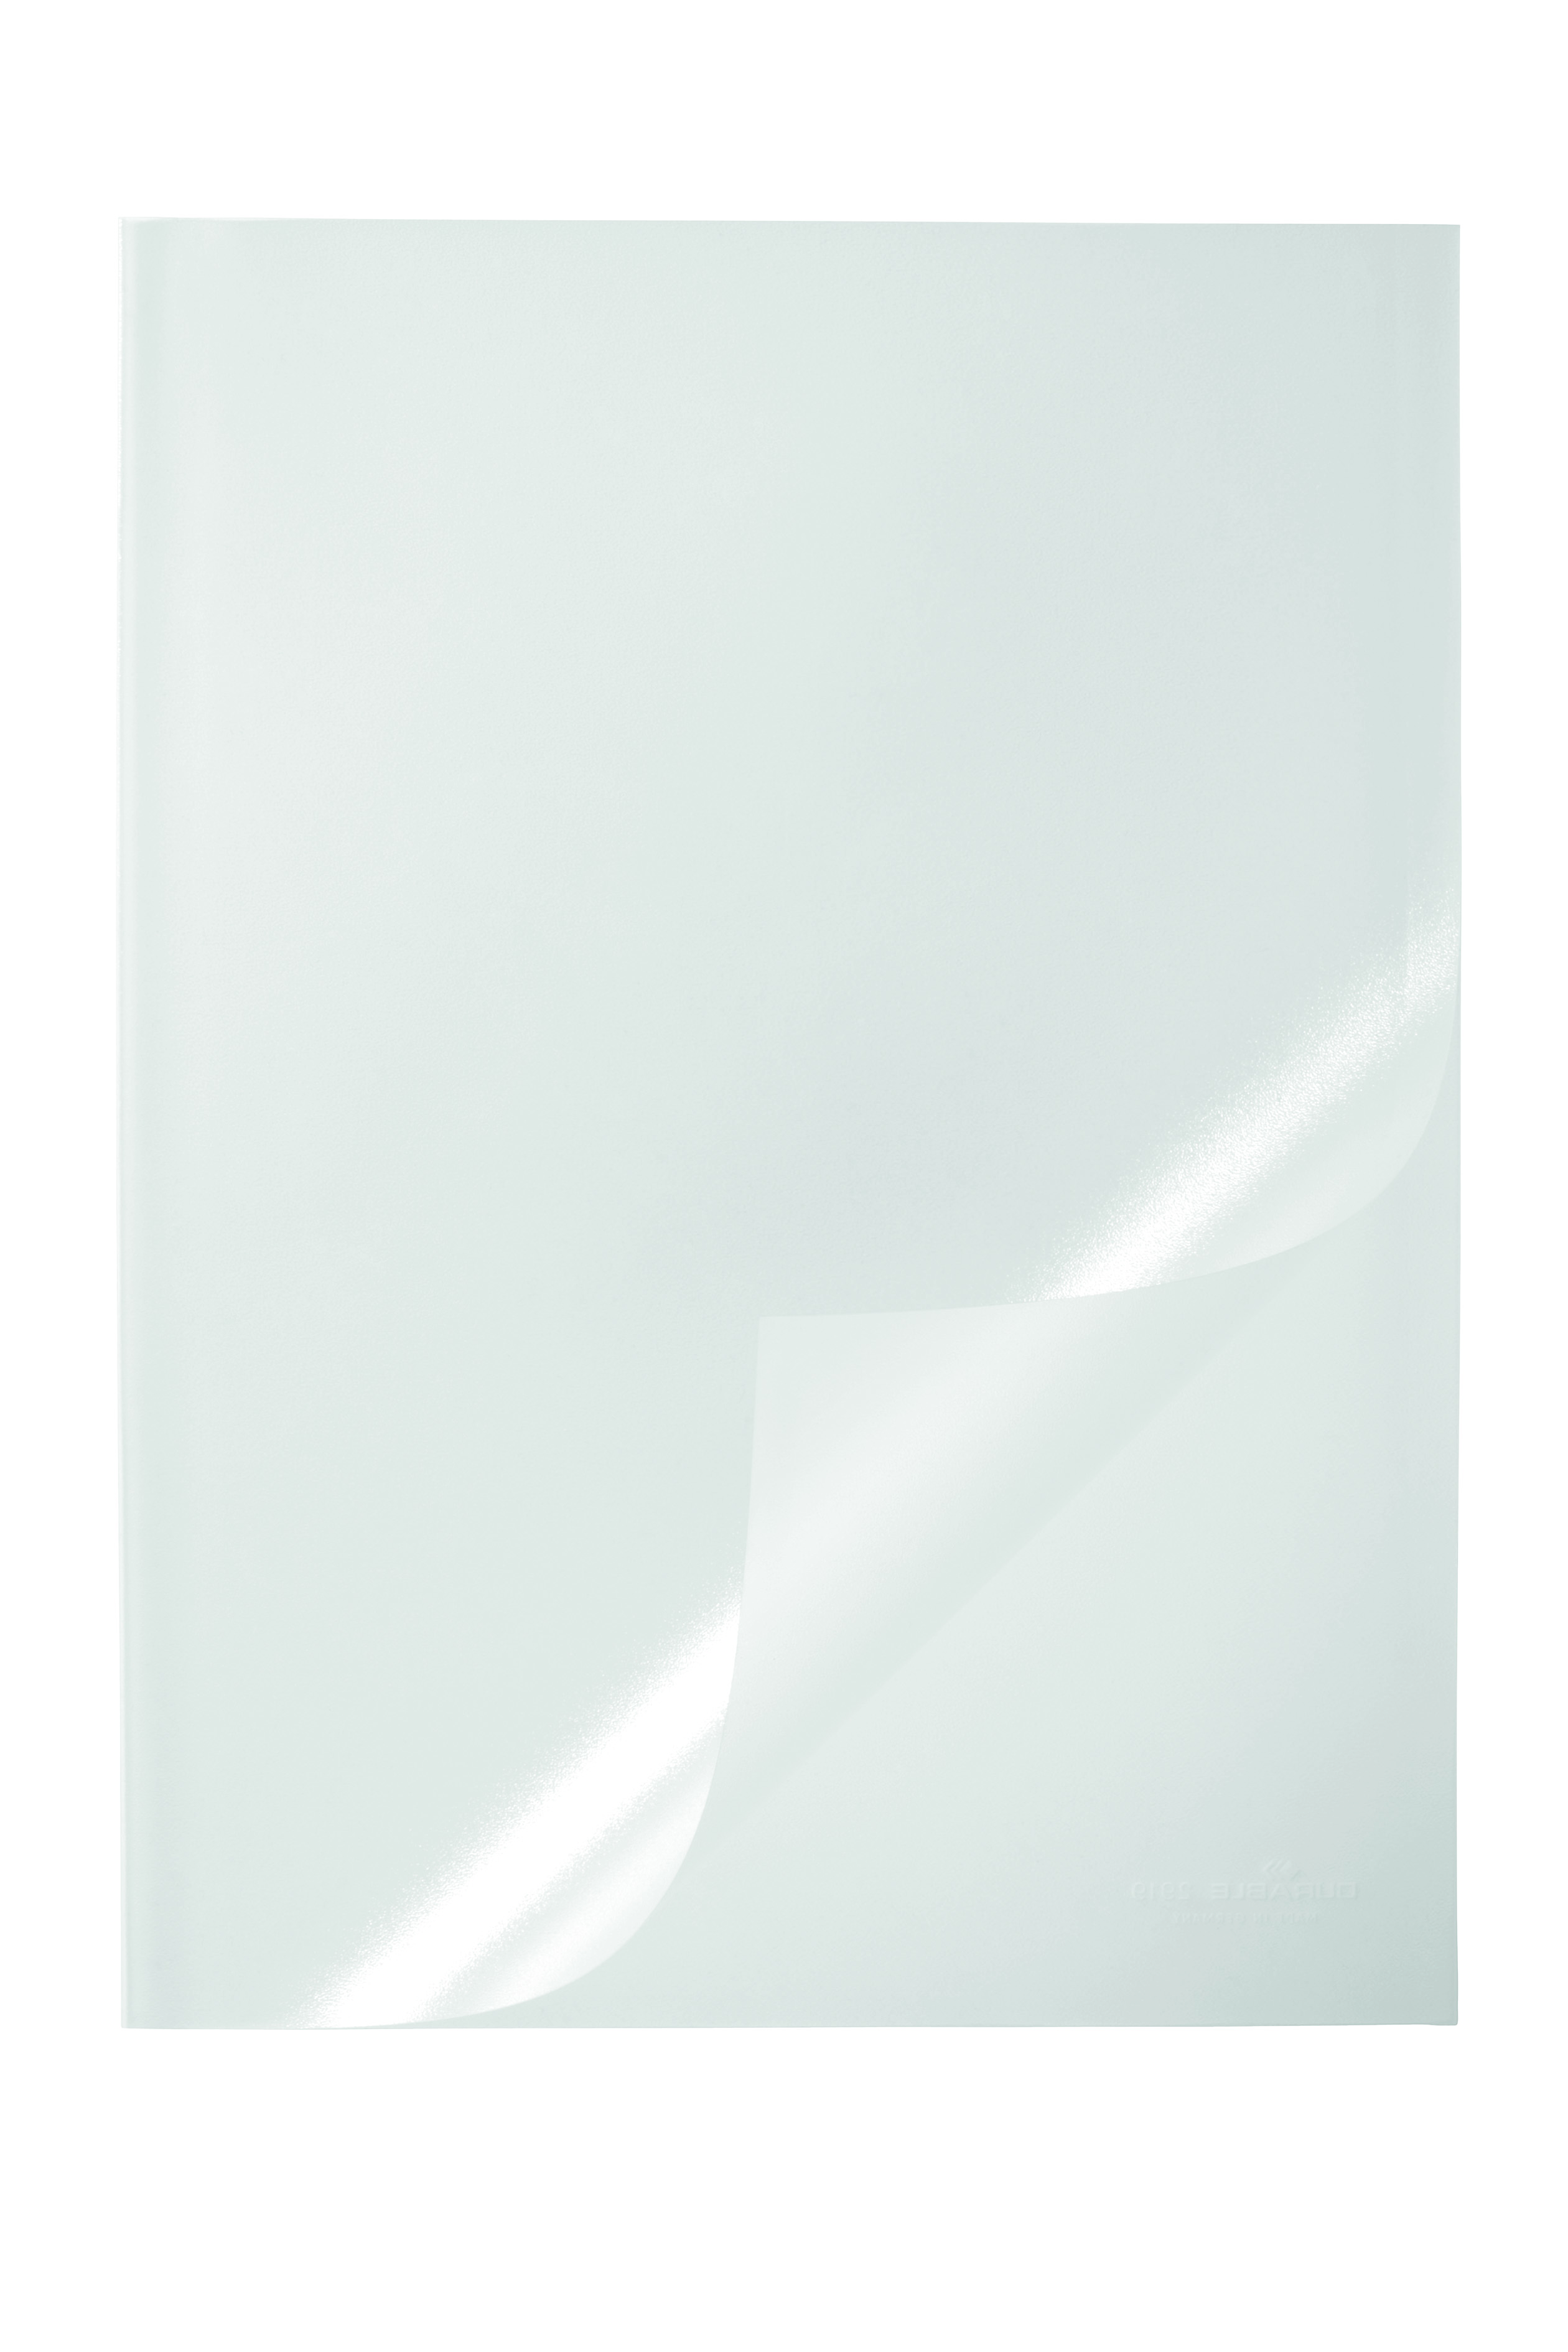 Durable Report Cover PVC A4 Clear Pack 50